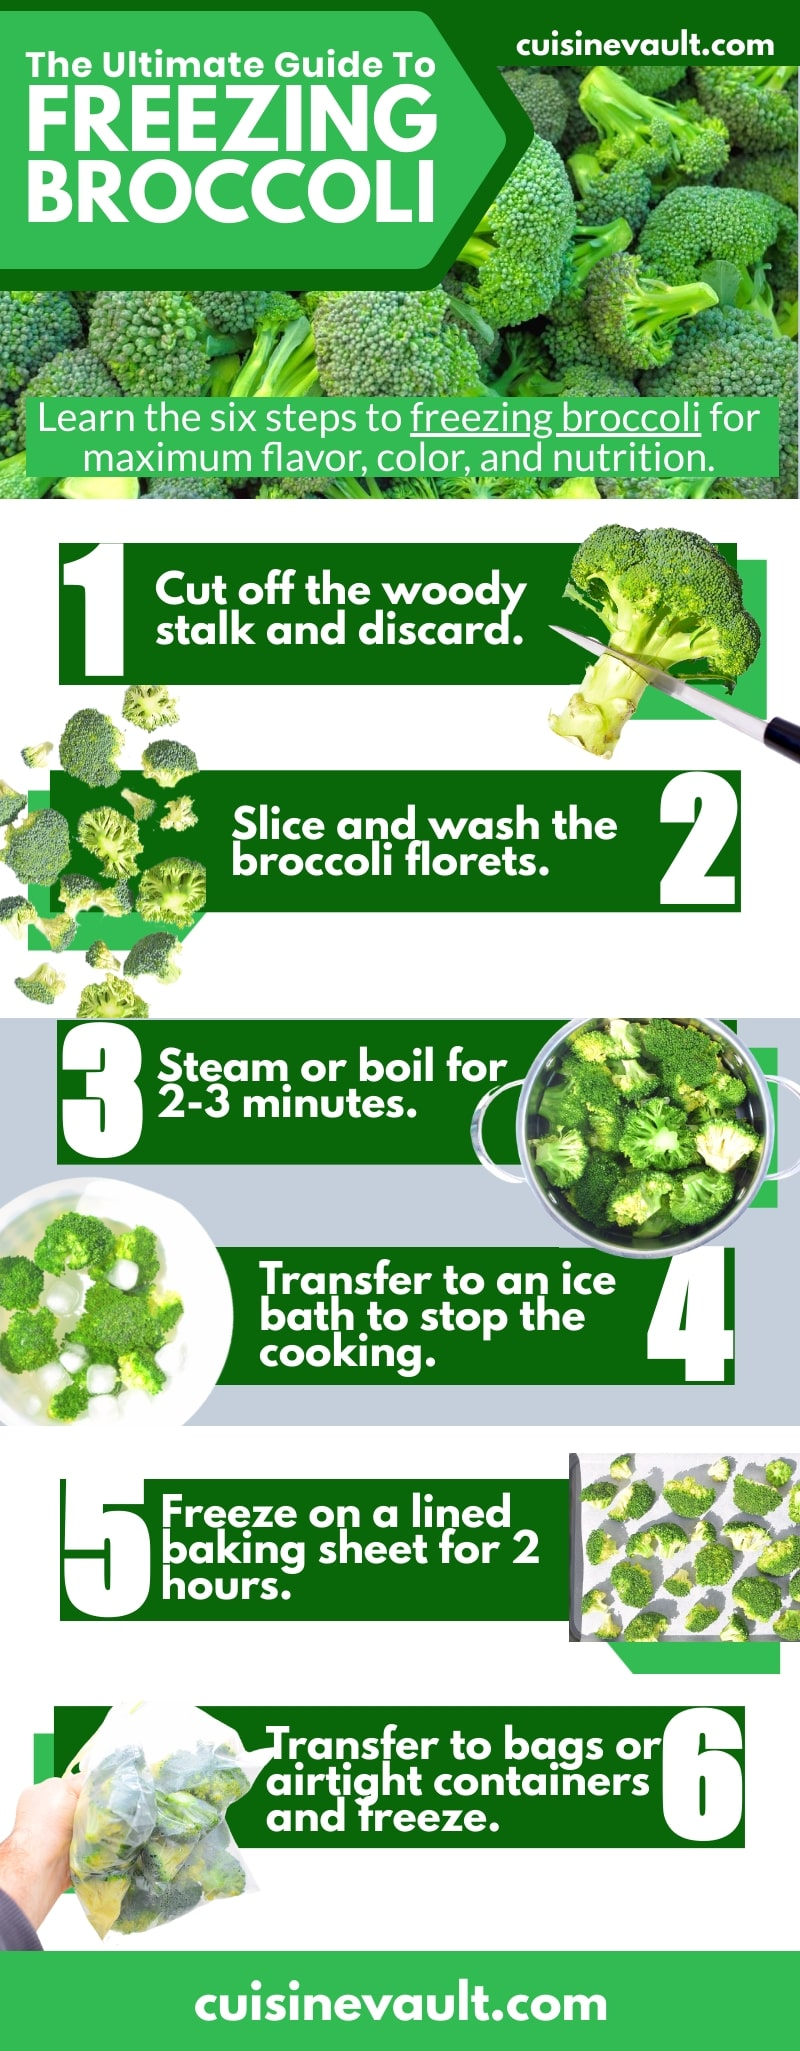 How To Freeze Broccoli – A Beginner's Guide